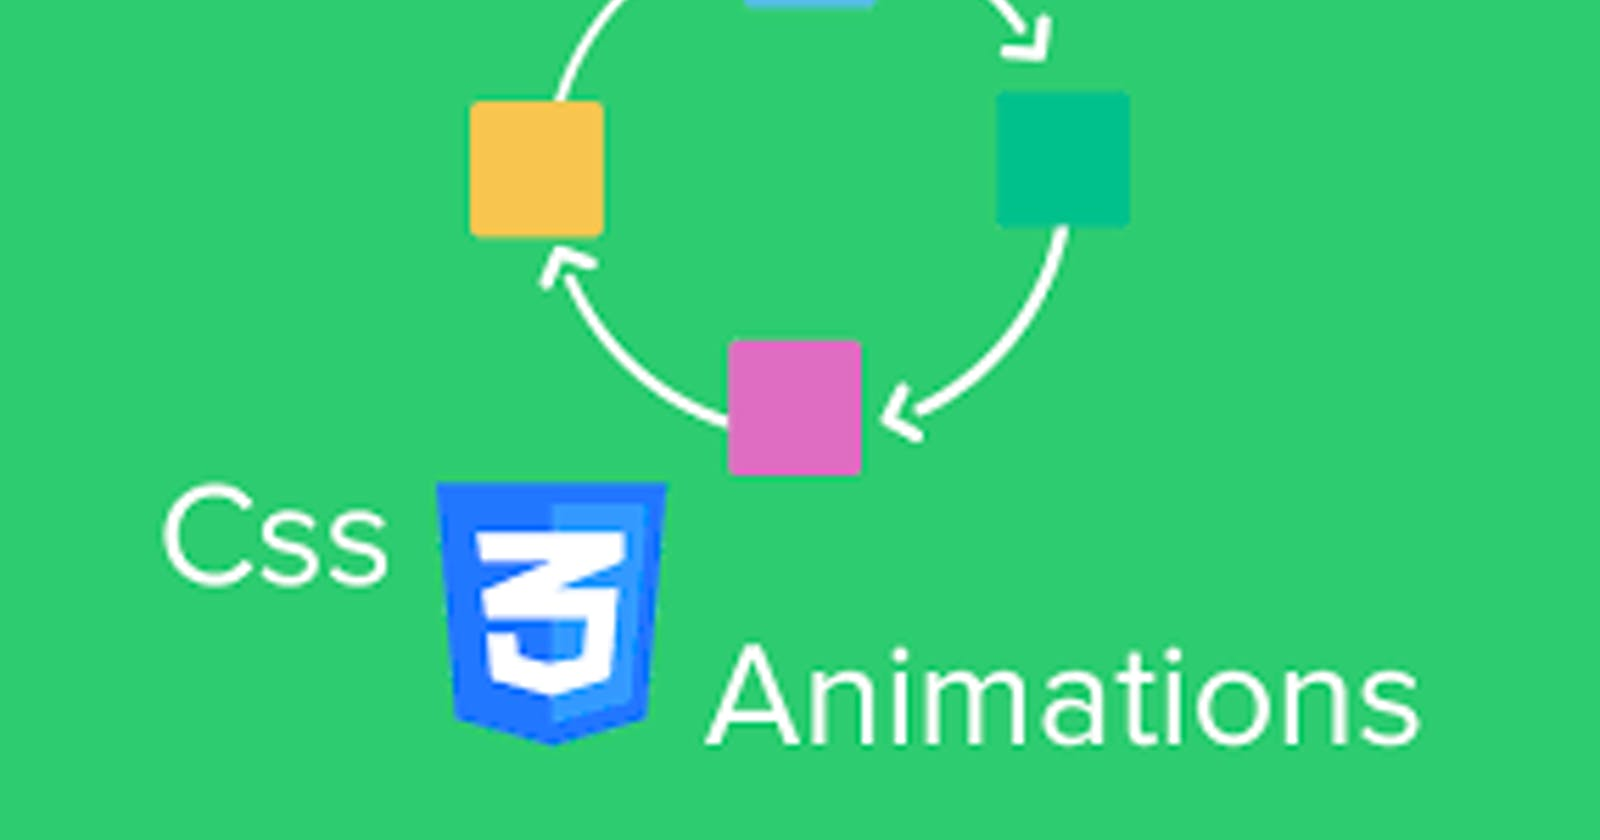 Creating animations using CSS